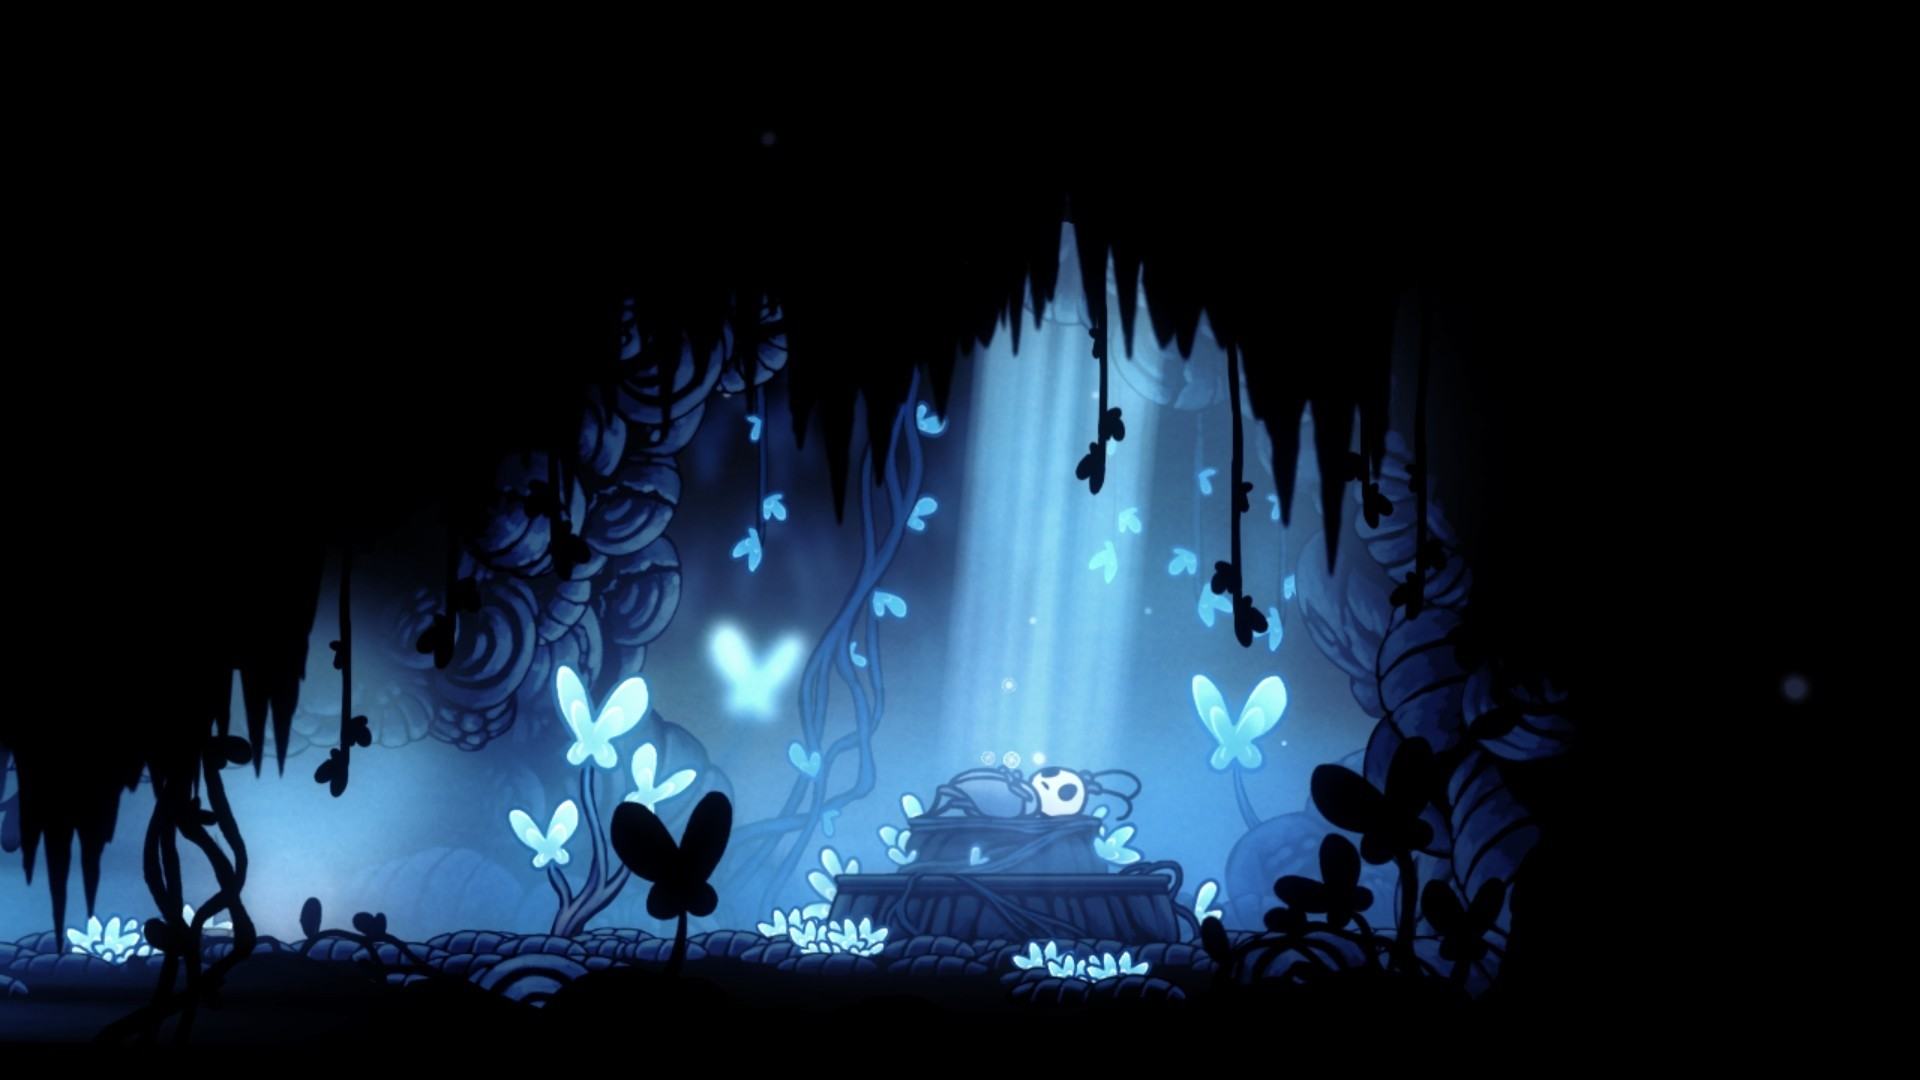 Hollow Knight Wallpaper for pc